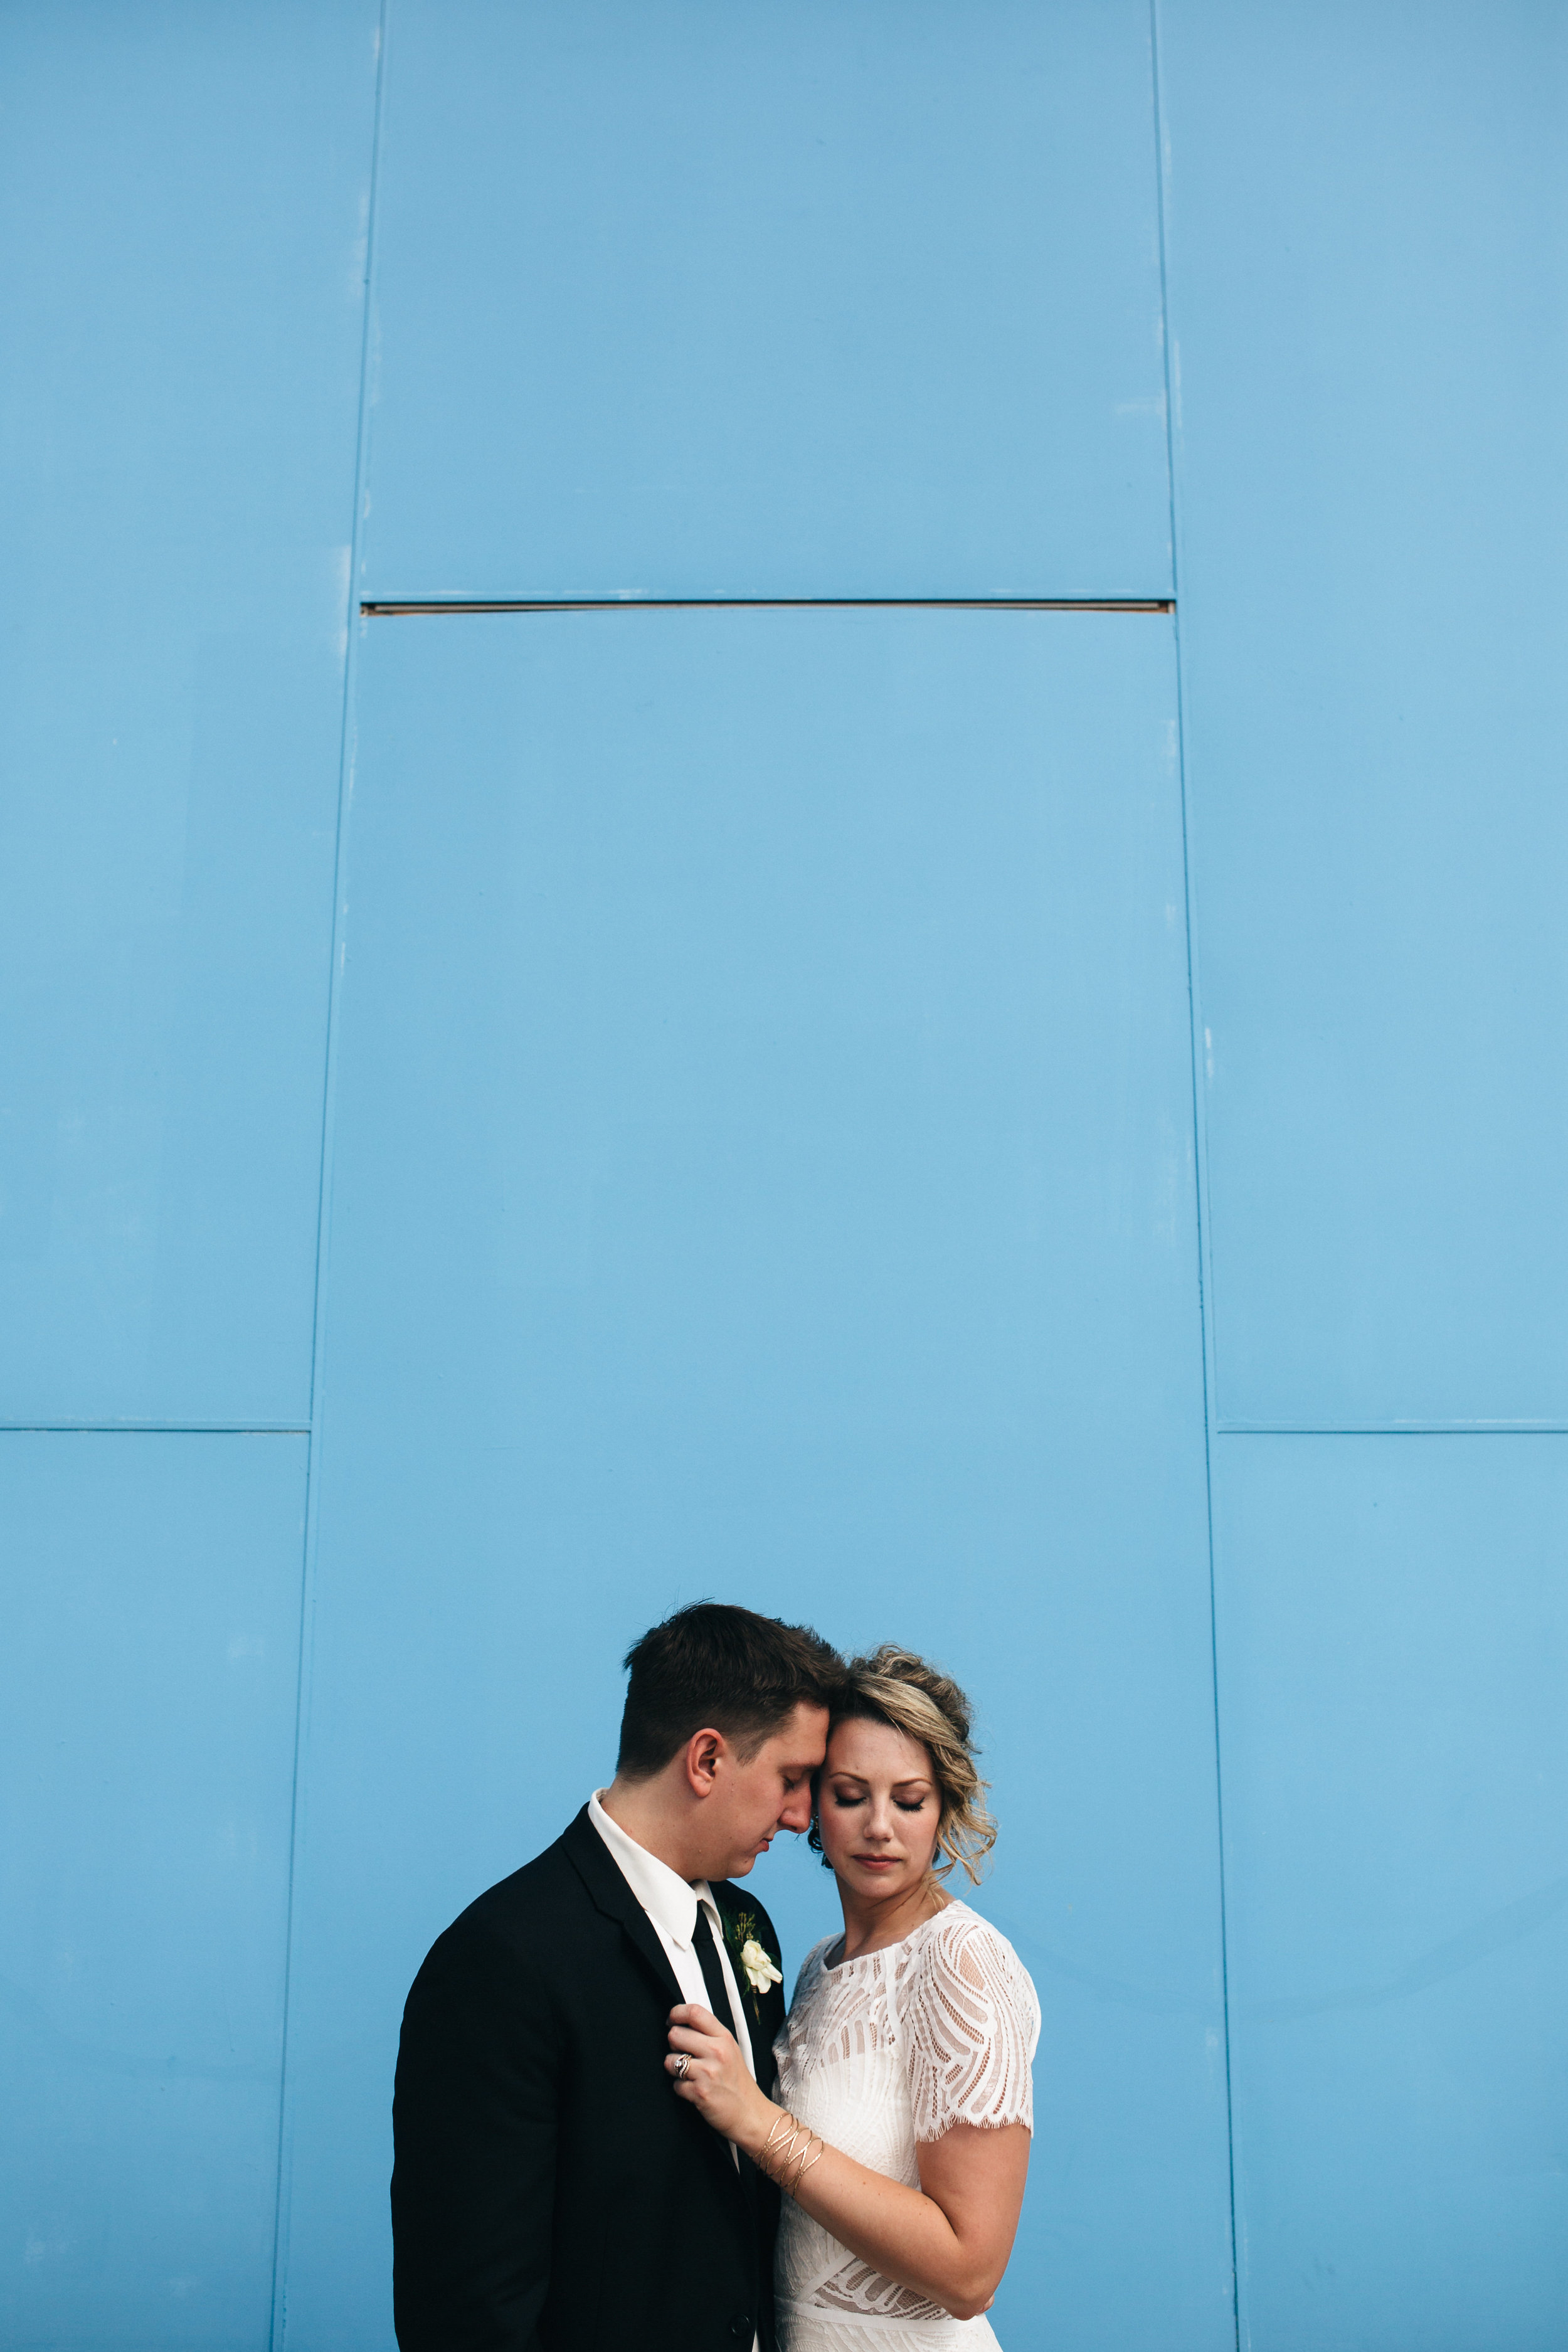 Wedding photography in downtown Toledo.